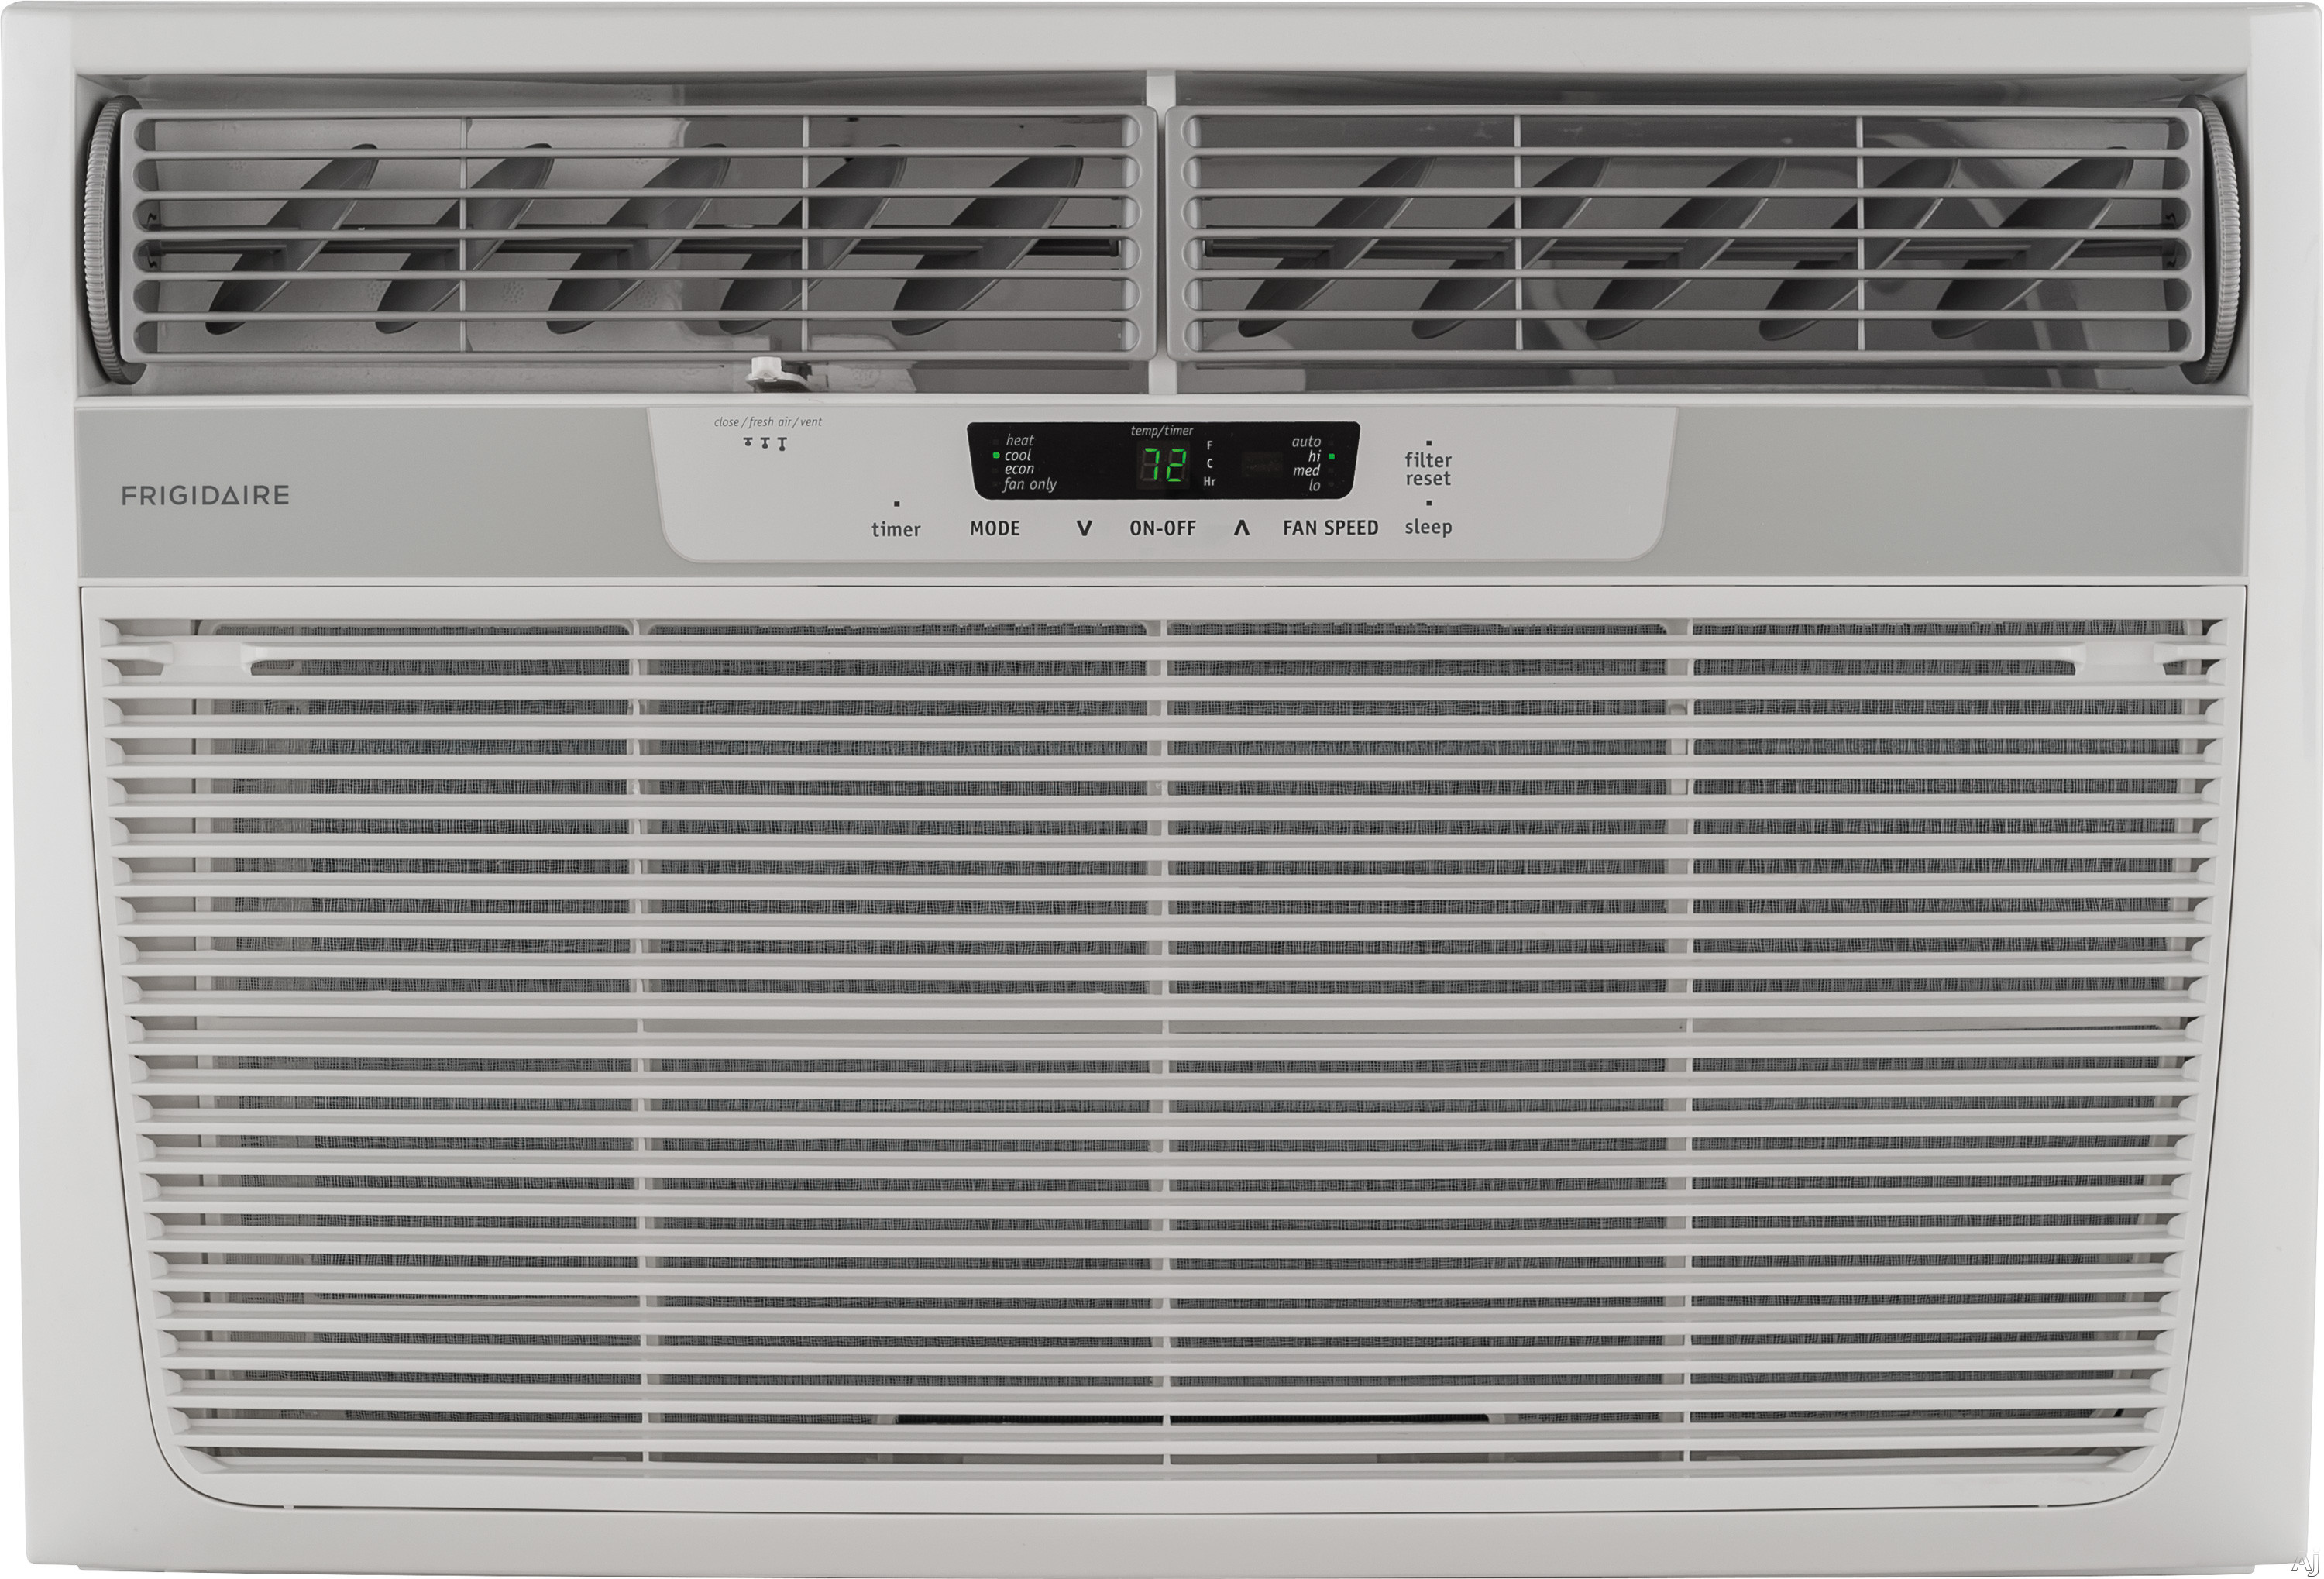 Frigidaire FFRH2522R2 25,000 BTU Room Air Conditioner with 16,000 BTU Electric Heat, 9.4 EER, R-410A Refrigerant, 8.0 Pts/Hr Dehumidification, Auto Restart and 230/208 Volts FFRH2522R2